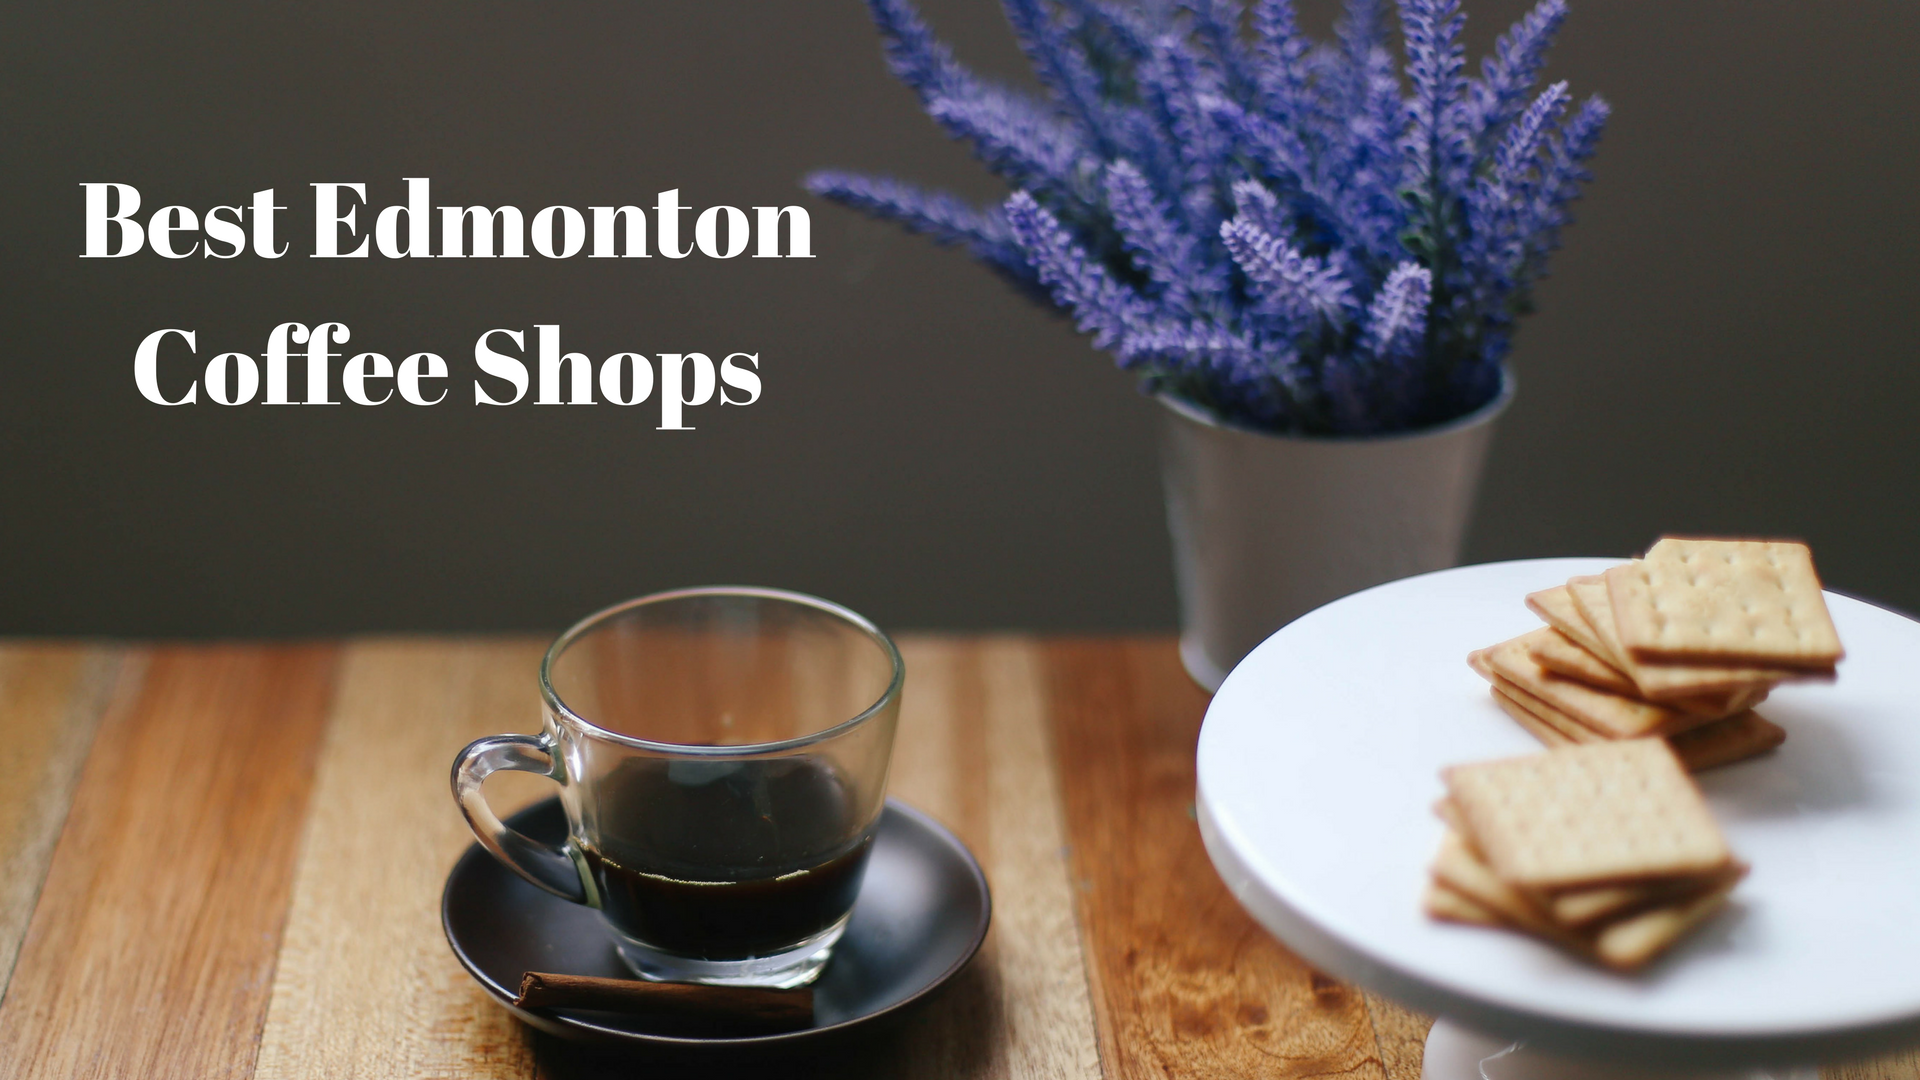 Edmonton's Best Coffee Shops